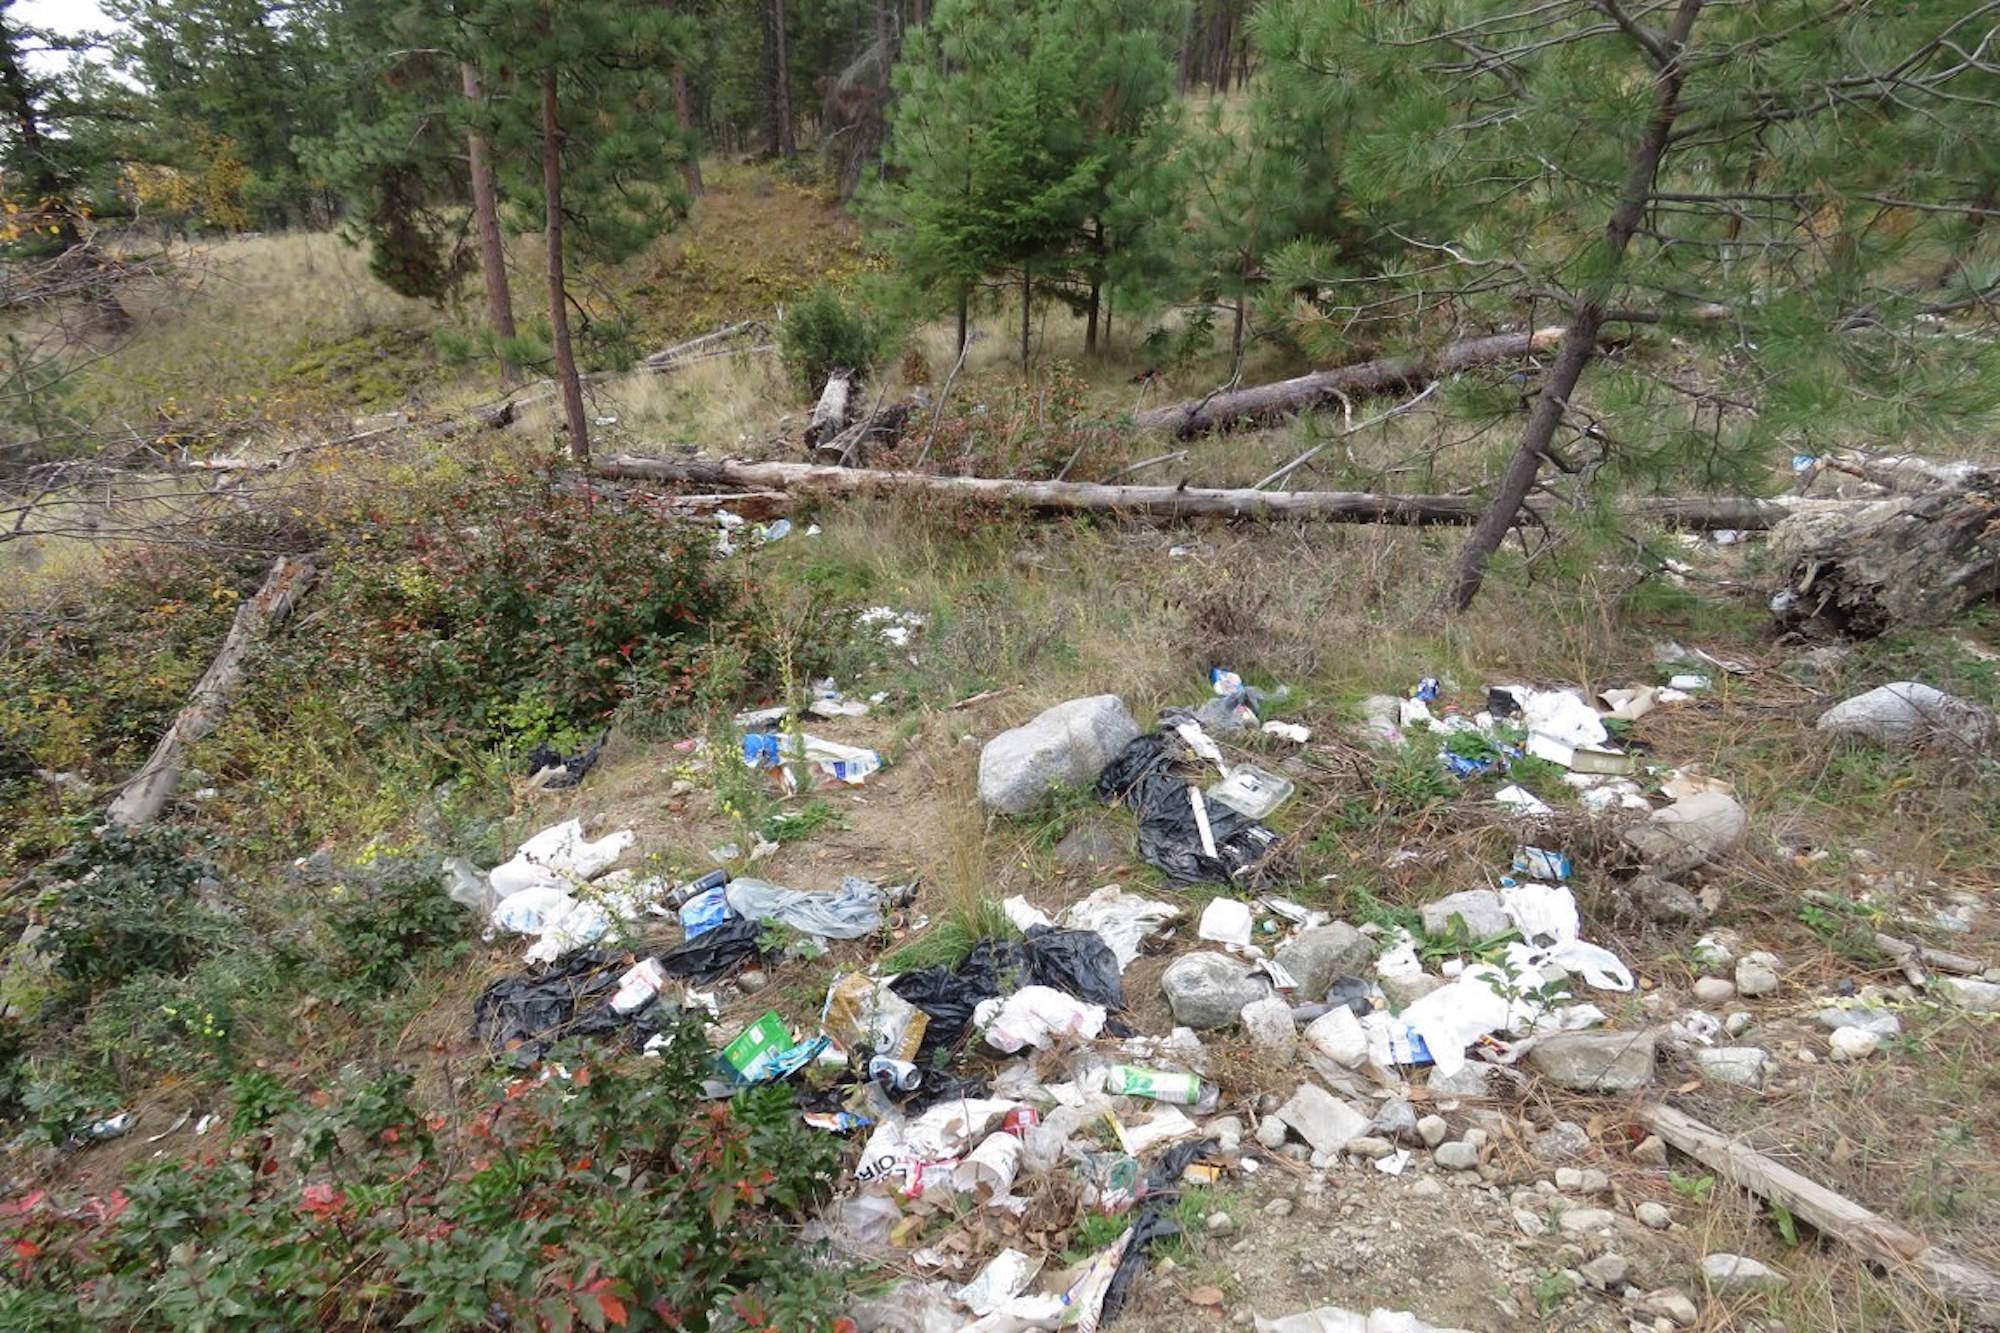 West Kelowna business facing charges after six bears killed over littering